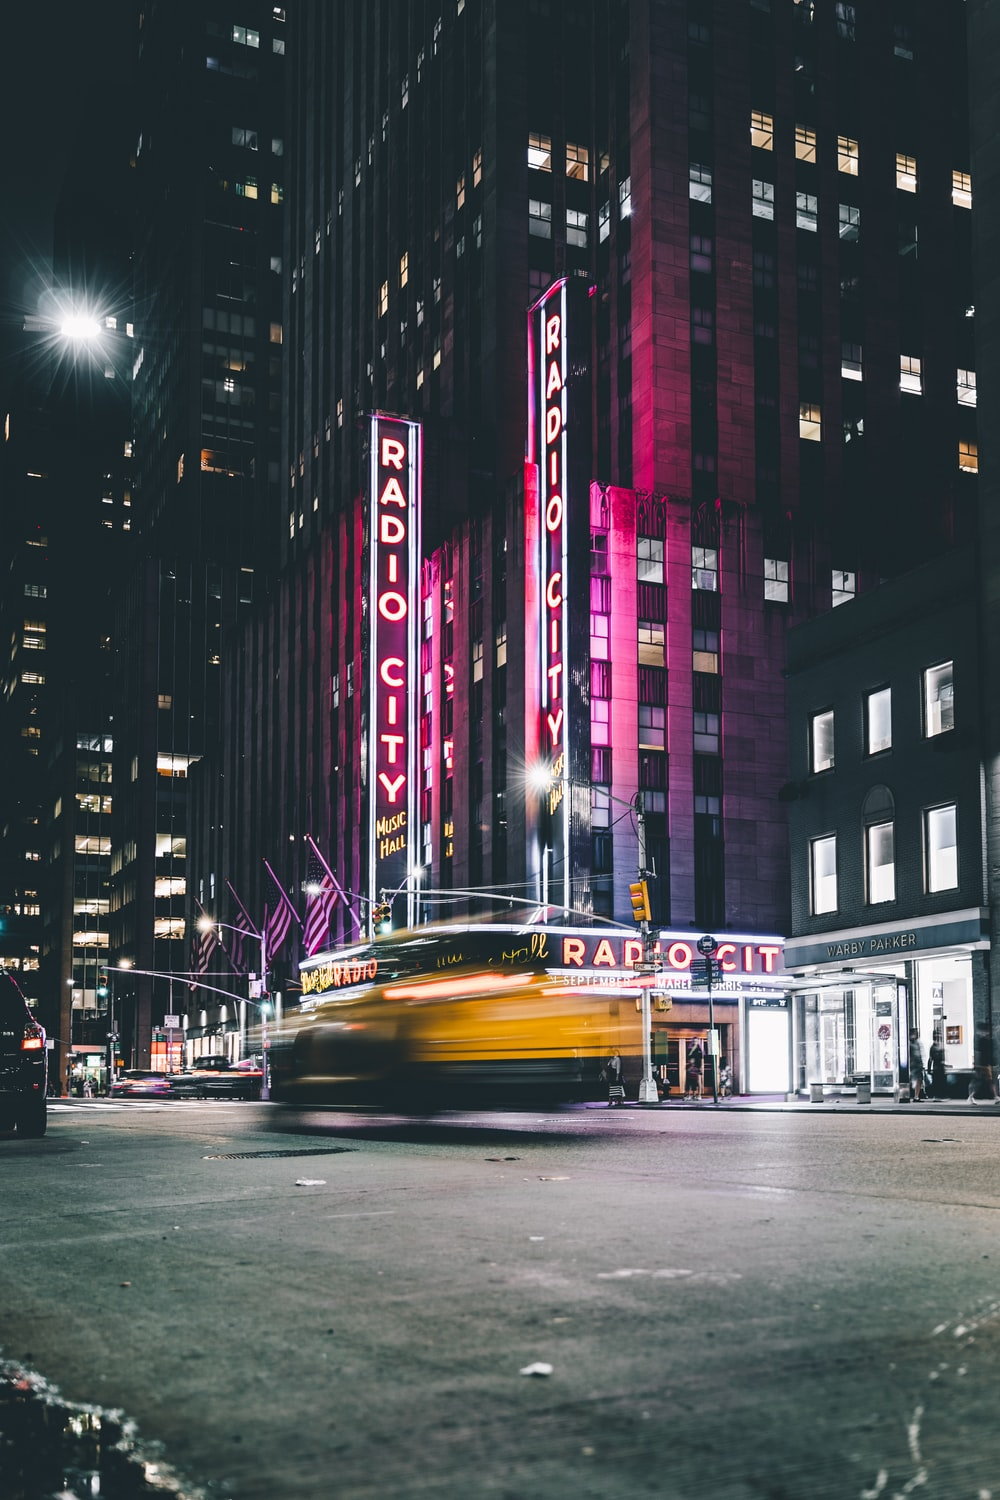 radio city buildings in time lapse photography